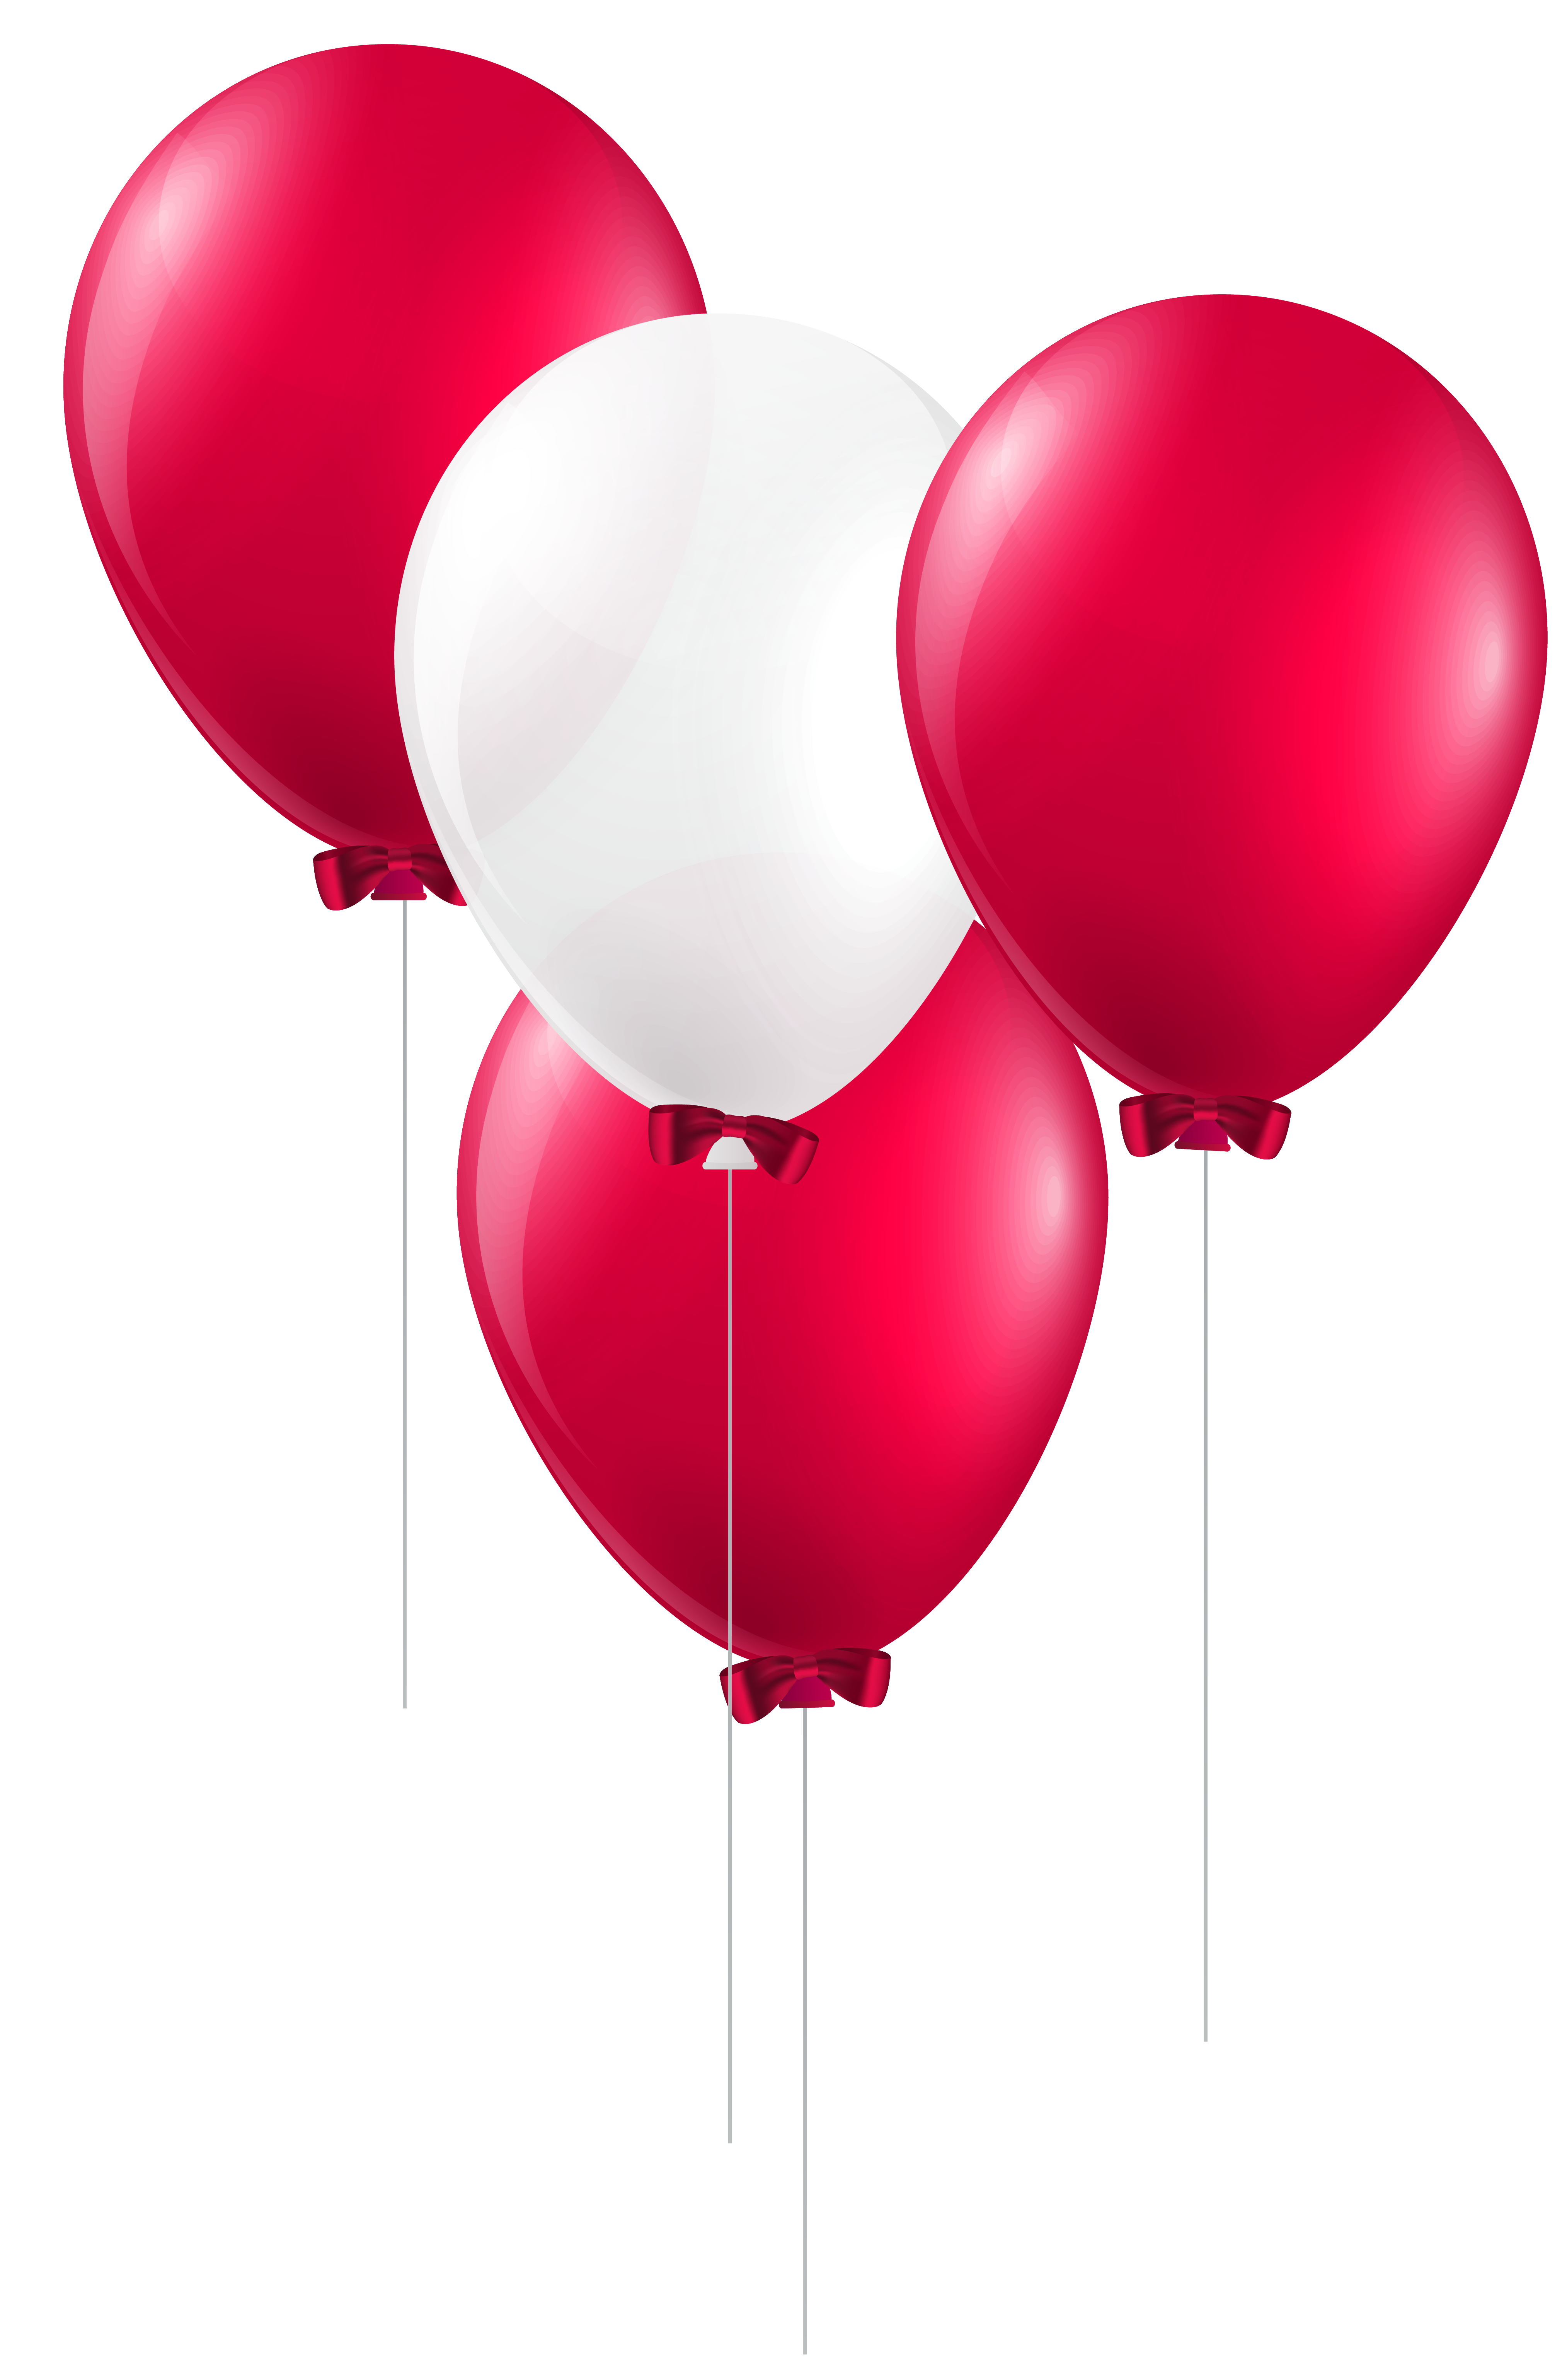 Red and White Balloons PNG Clip Art Image.